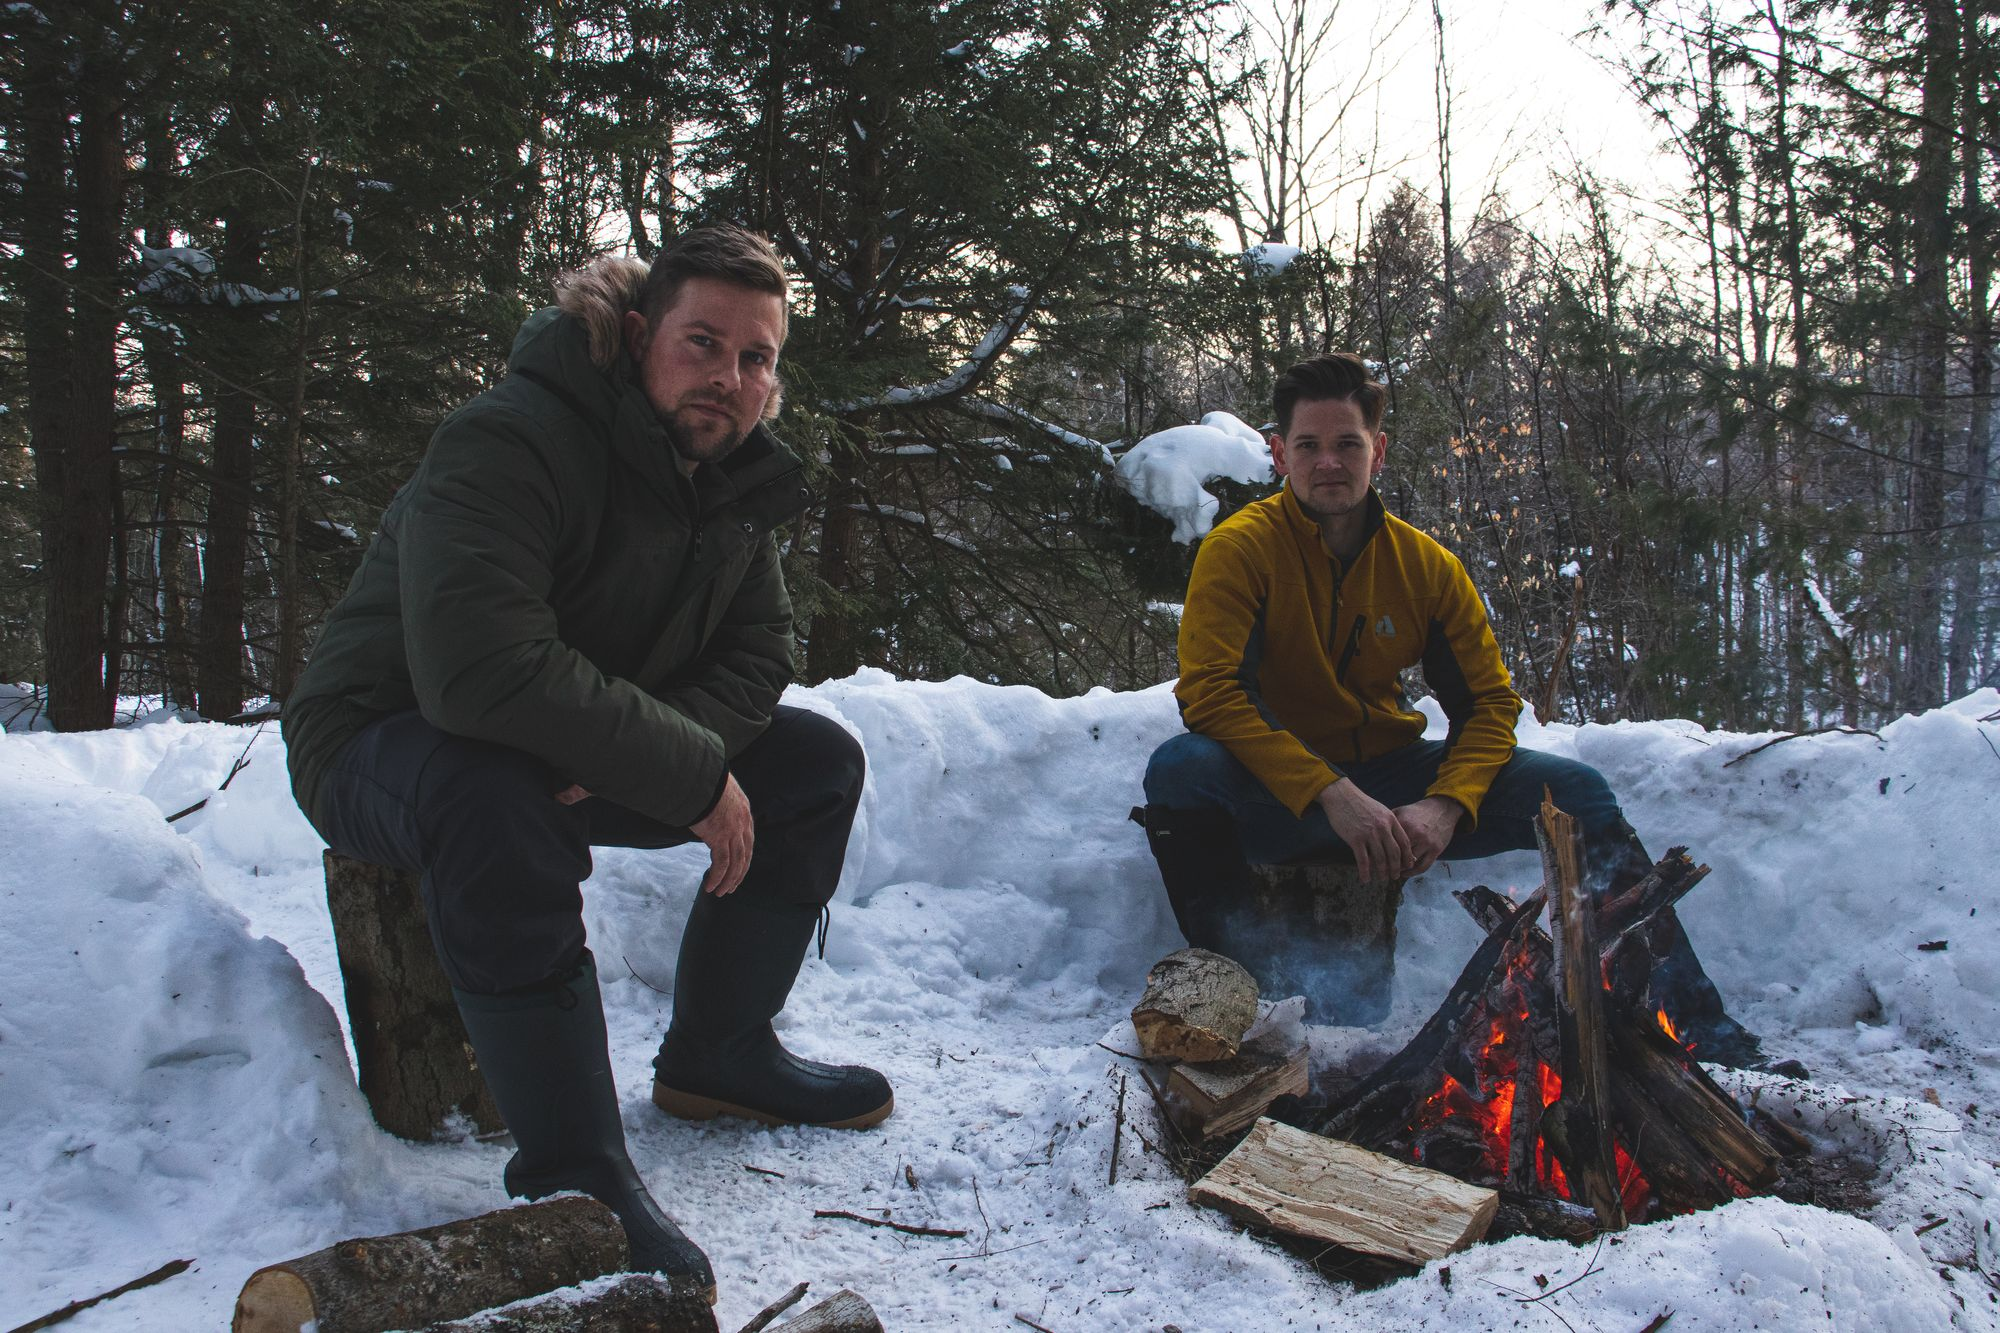 Northern Raised co-founders, Andrew Pottruff and Zack Langlois